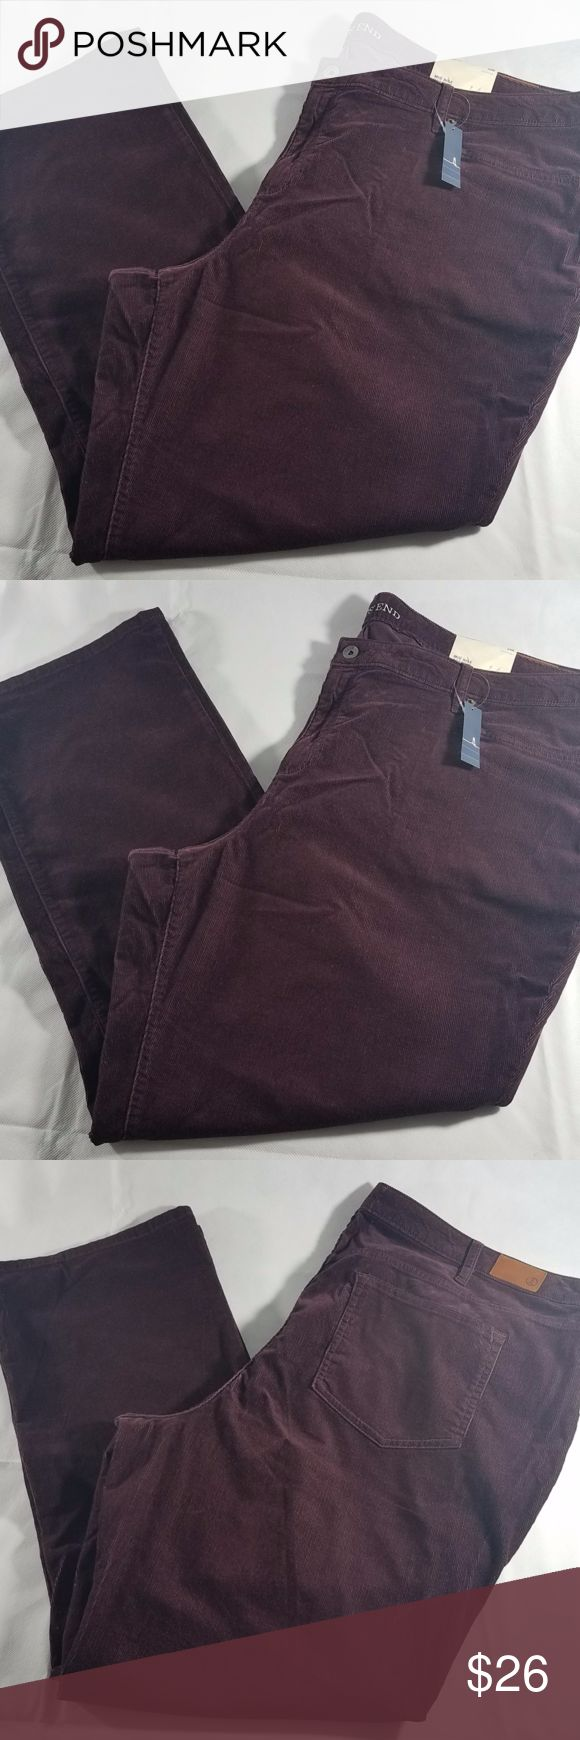 """Women's Land's Mid rise Corduroy 24W Description: Five pockets Corduroy Mid rise and a boot cut pants. Sits just below waist straight fit through hip & thigh bootcut leg opening Brand: Land's End Size: 24W Color: Age Wine Measurements: Waist 46"""" Inseam 30"""" Rise: 13""""  Hip 25.5"""" Material: 99% cotton and 1% Elastane Retail Price: $59.00 Condition: Brand new with tags Lands' End Pants Boot Cut & Flare"""